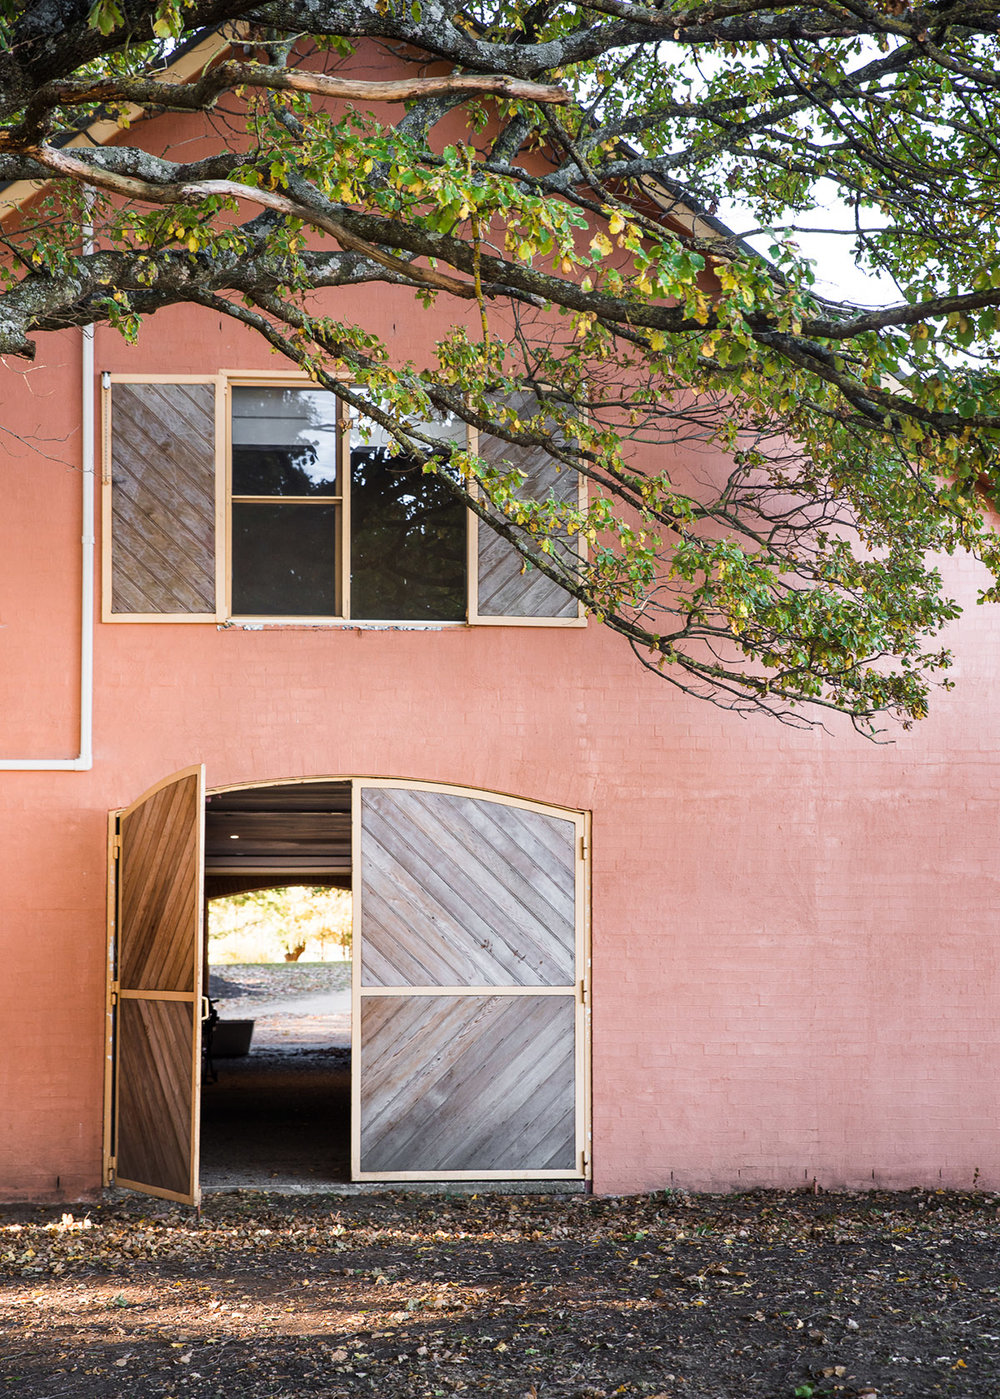 Details - Bedrooms4 king bedrooms4 king beds and 2 single bedsKitchenetteFridgeStoveDishwasherCoffee machineMicrowaveLiving Lounge roomFull size snooker tableDining table with seating for up to 8 guestsSlow combustion fireplaceBathrooms2 ensuites3 bathrooms (1 with spa bath)OutdoorsBarbequeFire pit urnGeneralWireless internetAccess to the estate's gardens and farm